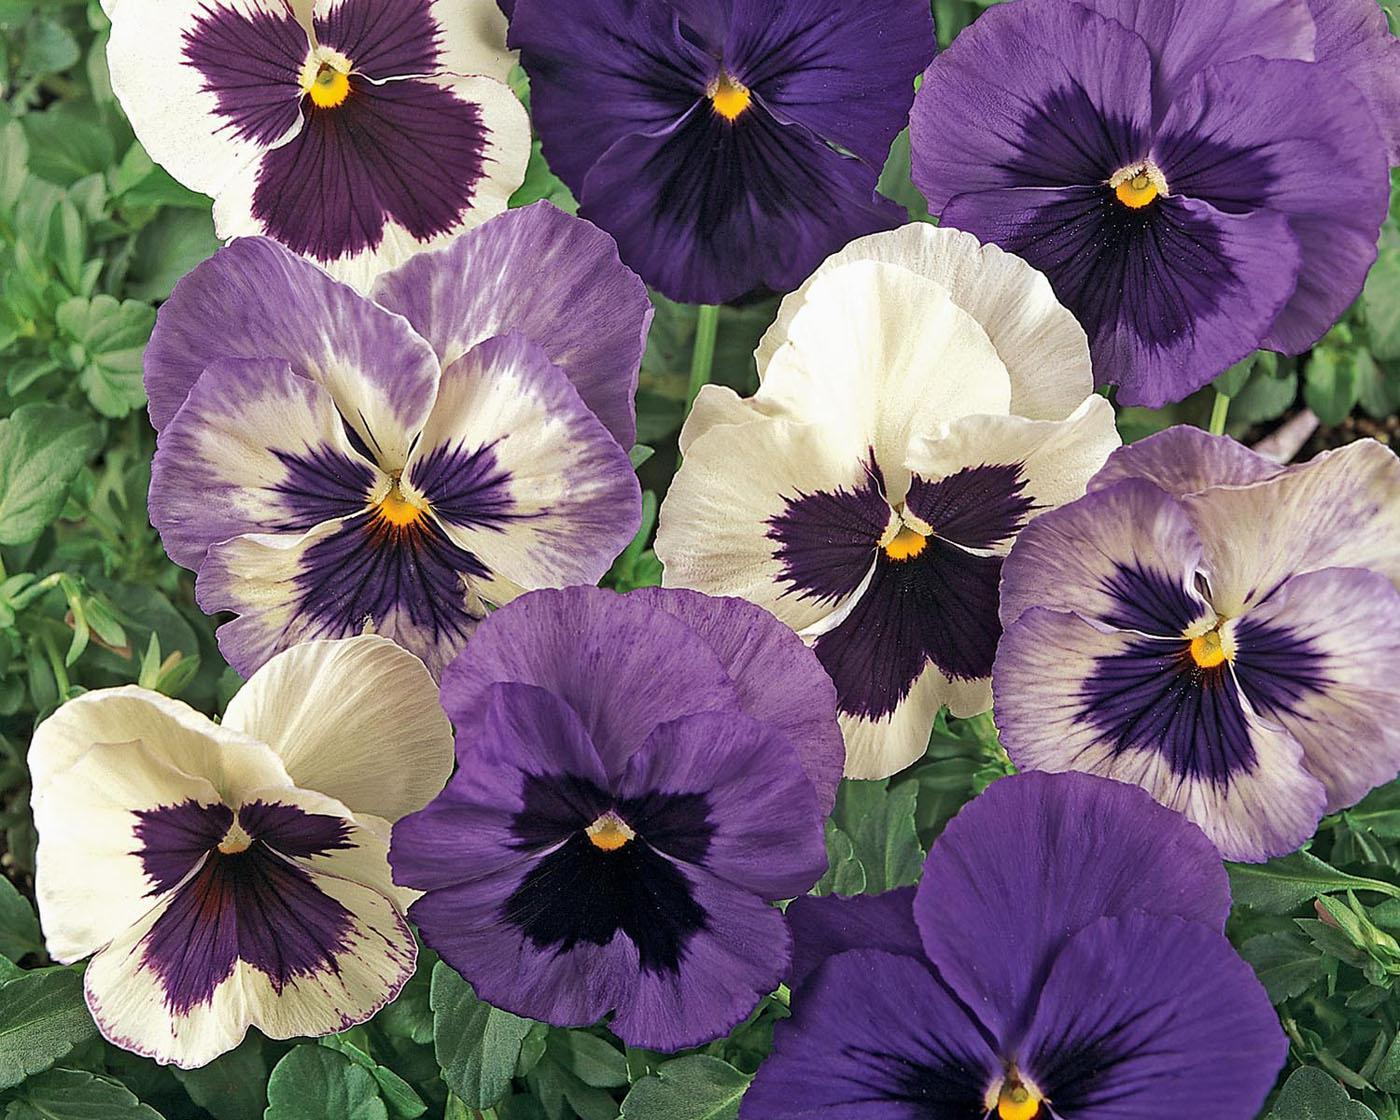 The Ocean Breeze pansy mix is made up of various shades of blue, lavender and white. Like the Coastal Sunrise mix, these pansies are in the popular new Matrix series.